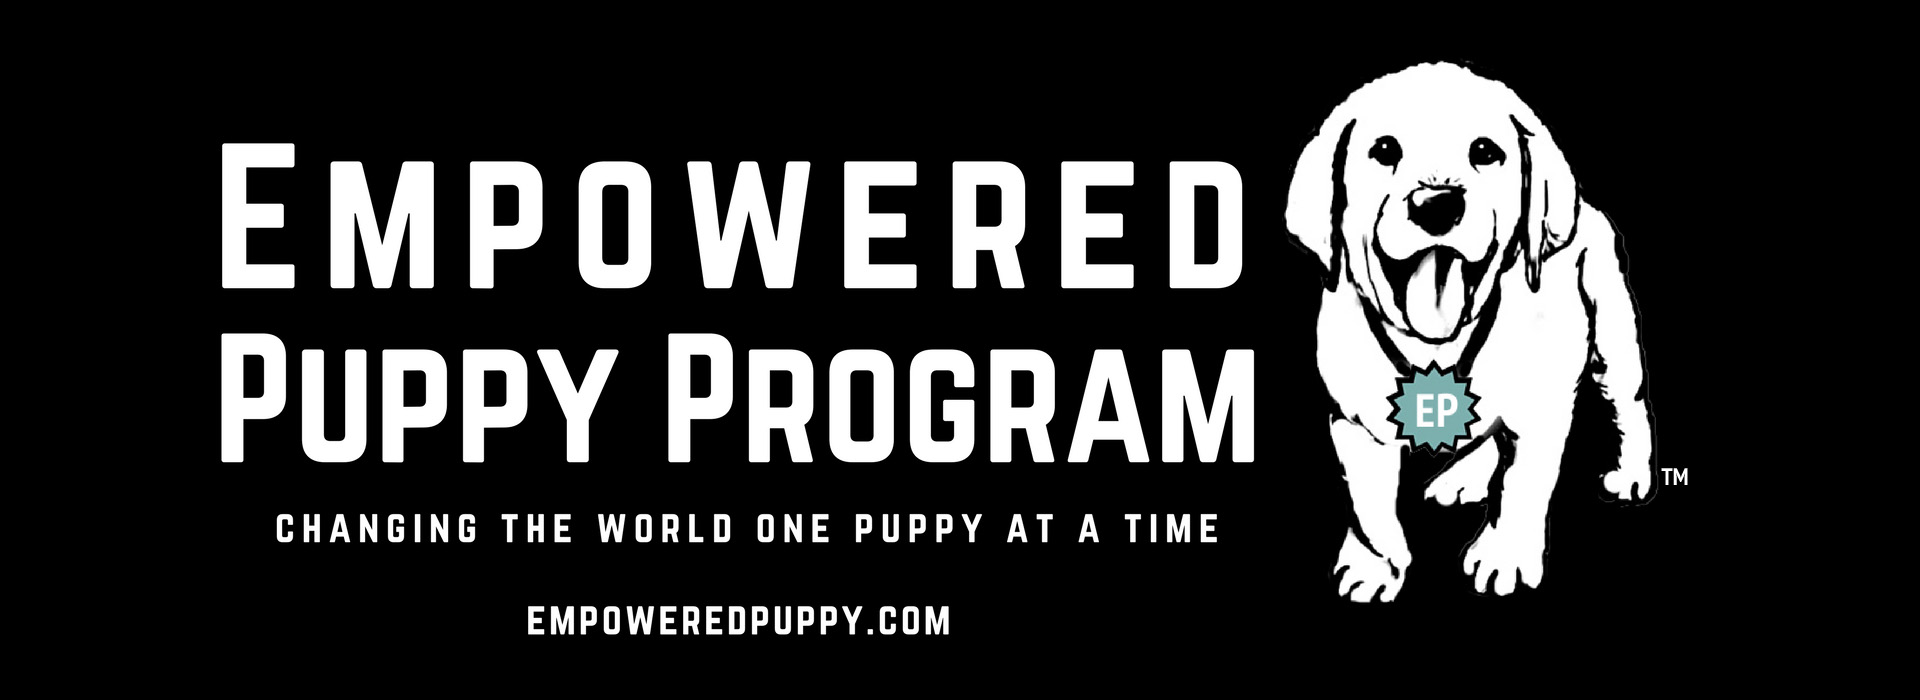 Empowered Puppy Program